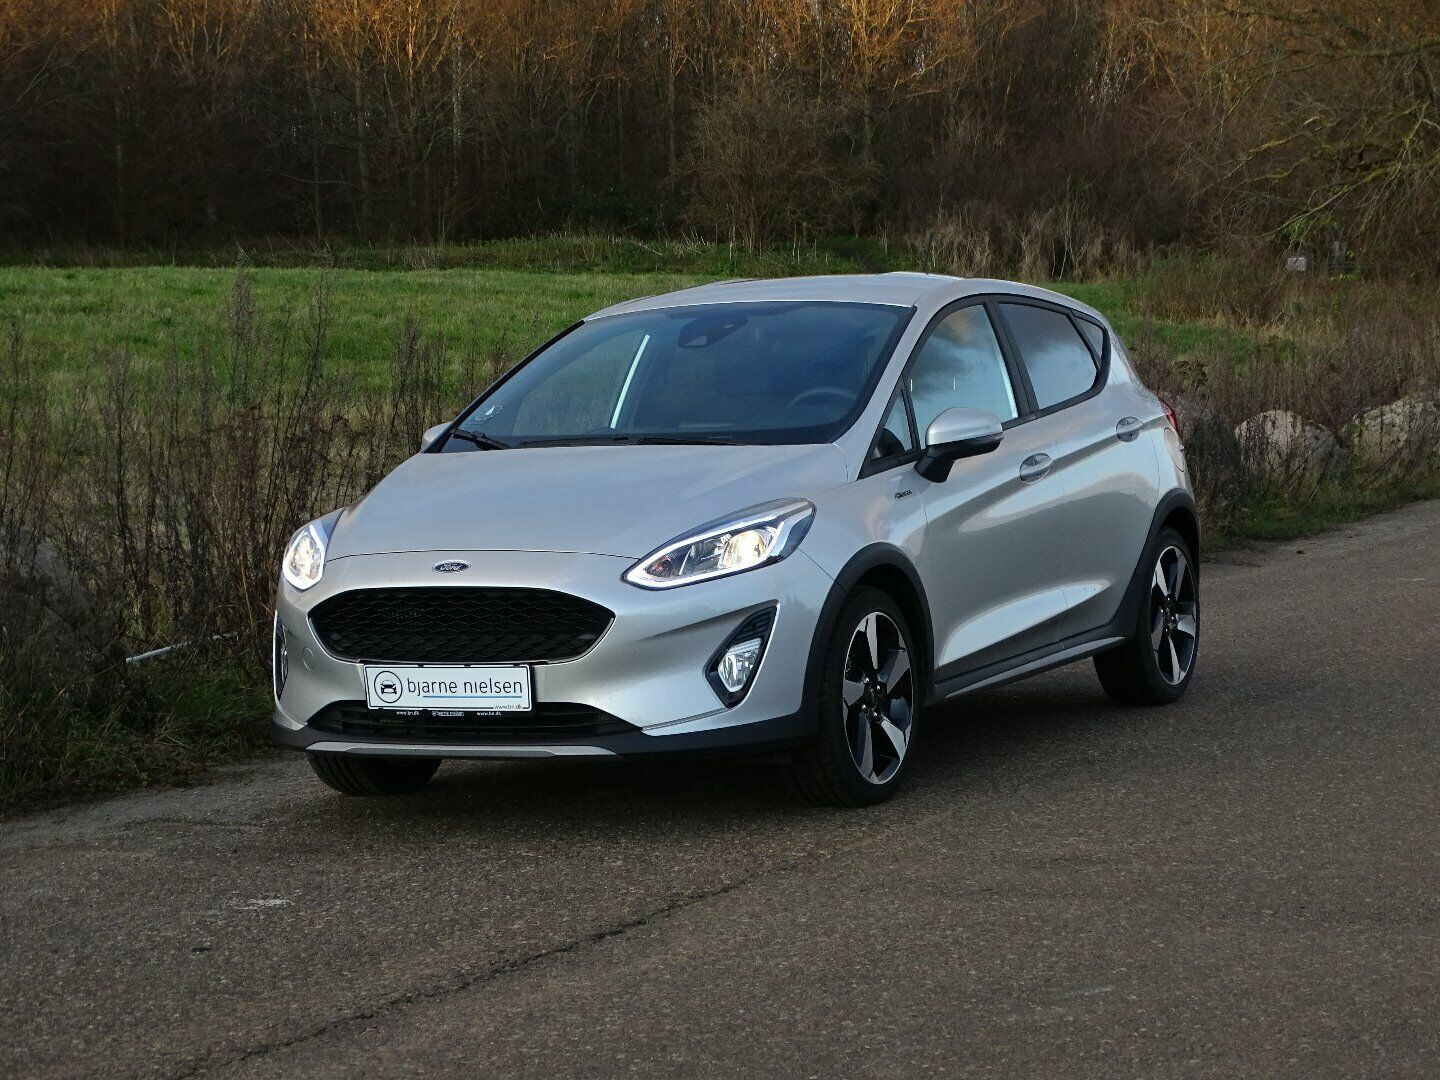 Ford Fiesta 1,0 SCTi 125 Active II